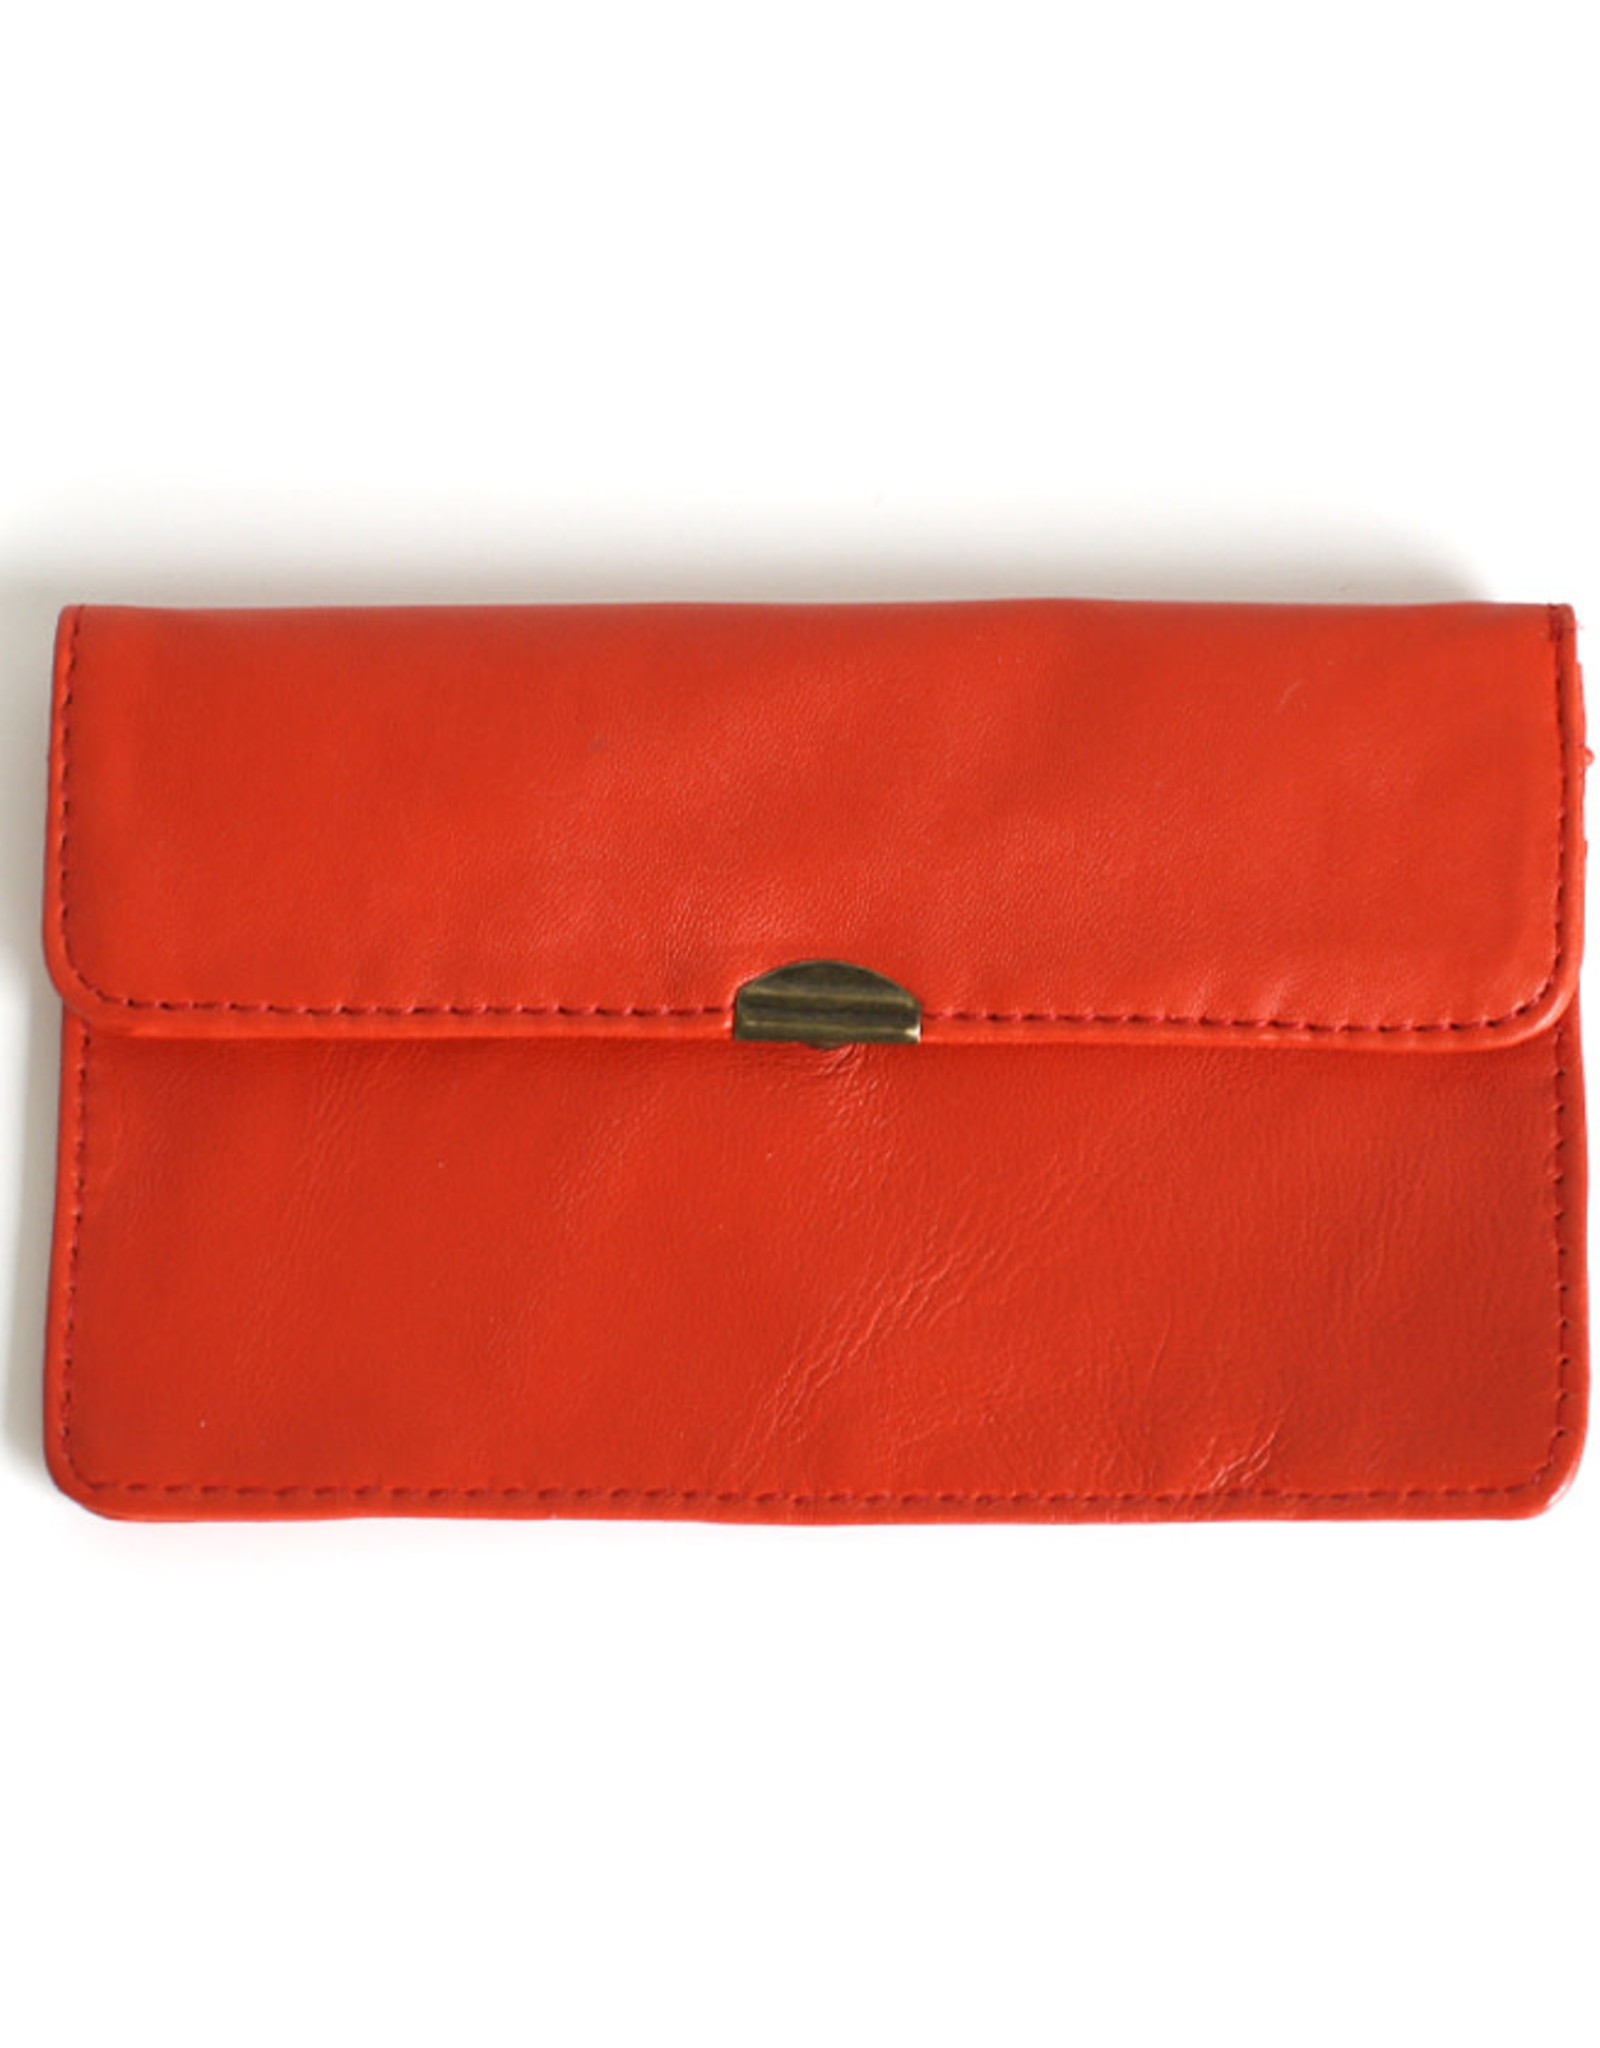 Flat Wallet-coral red